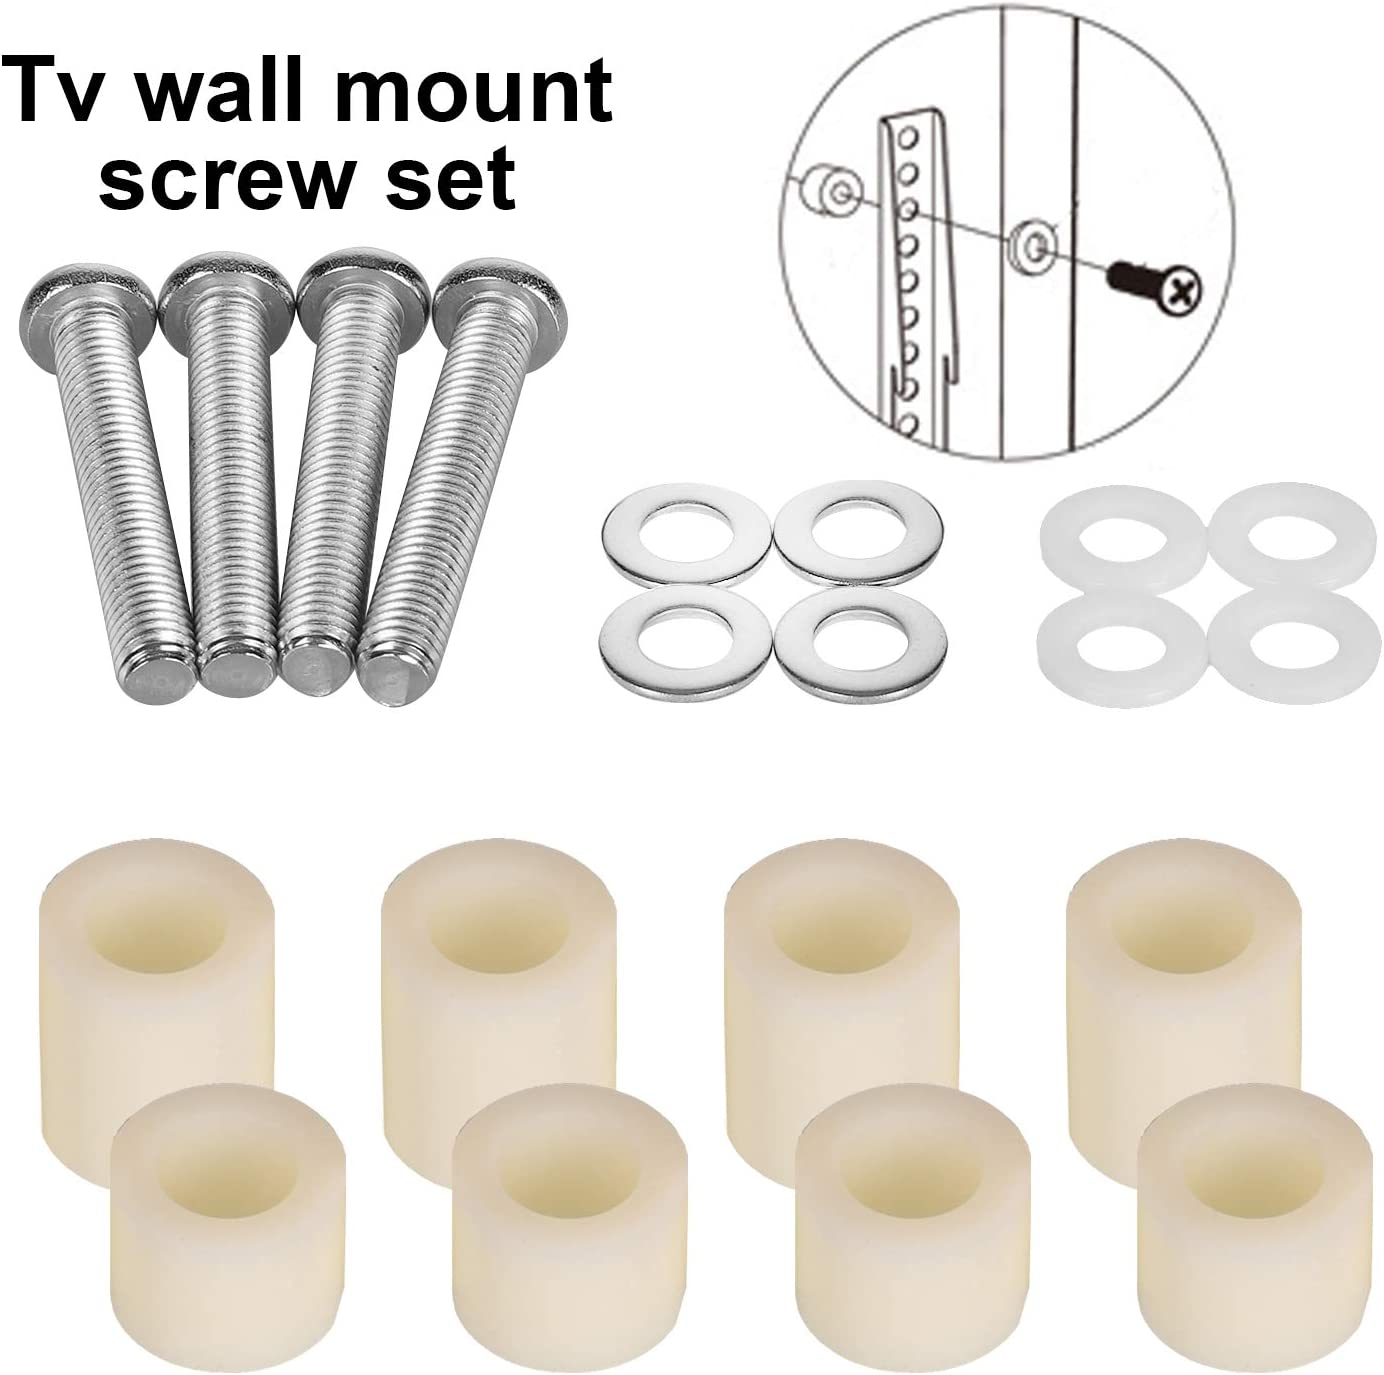 Extra Long M8x45mm TV Wall Mount Bracket to Large TV Bolts • With 25mm Long